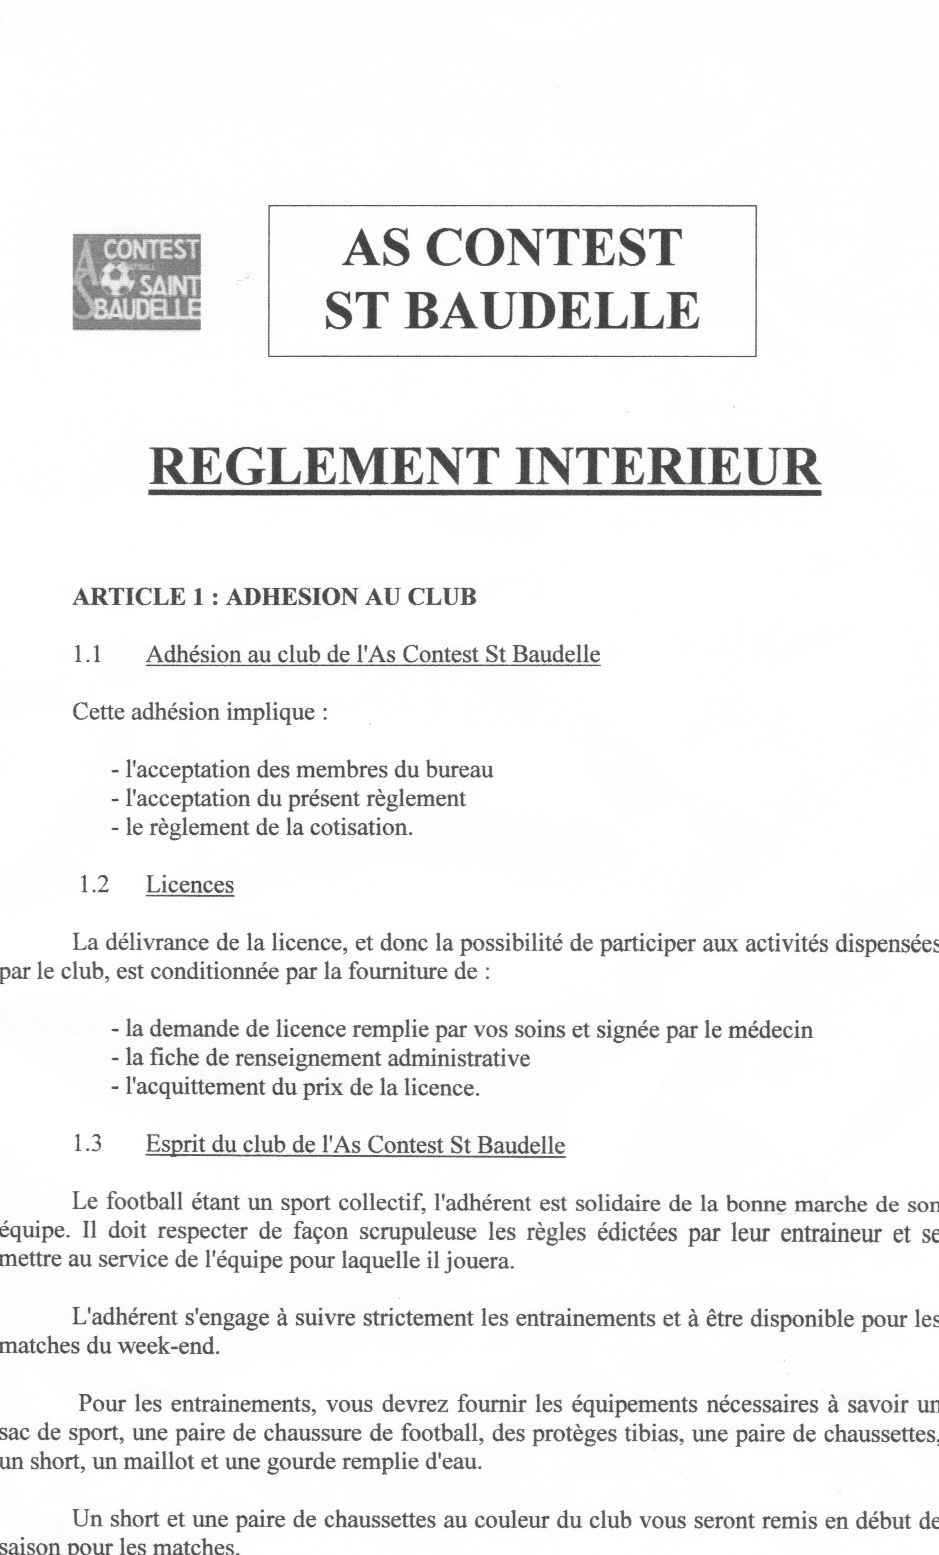 Reglement interieur du club club football as contest st for Exemple de reglement interieur association